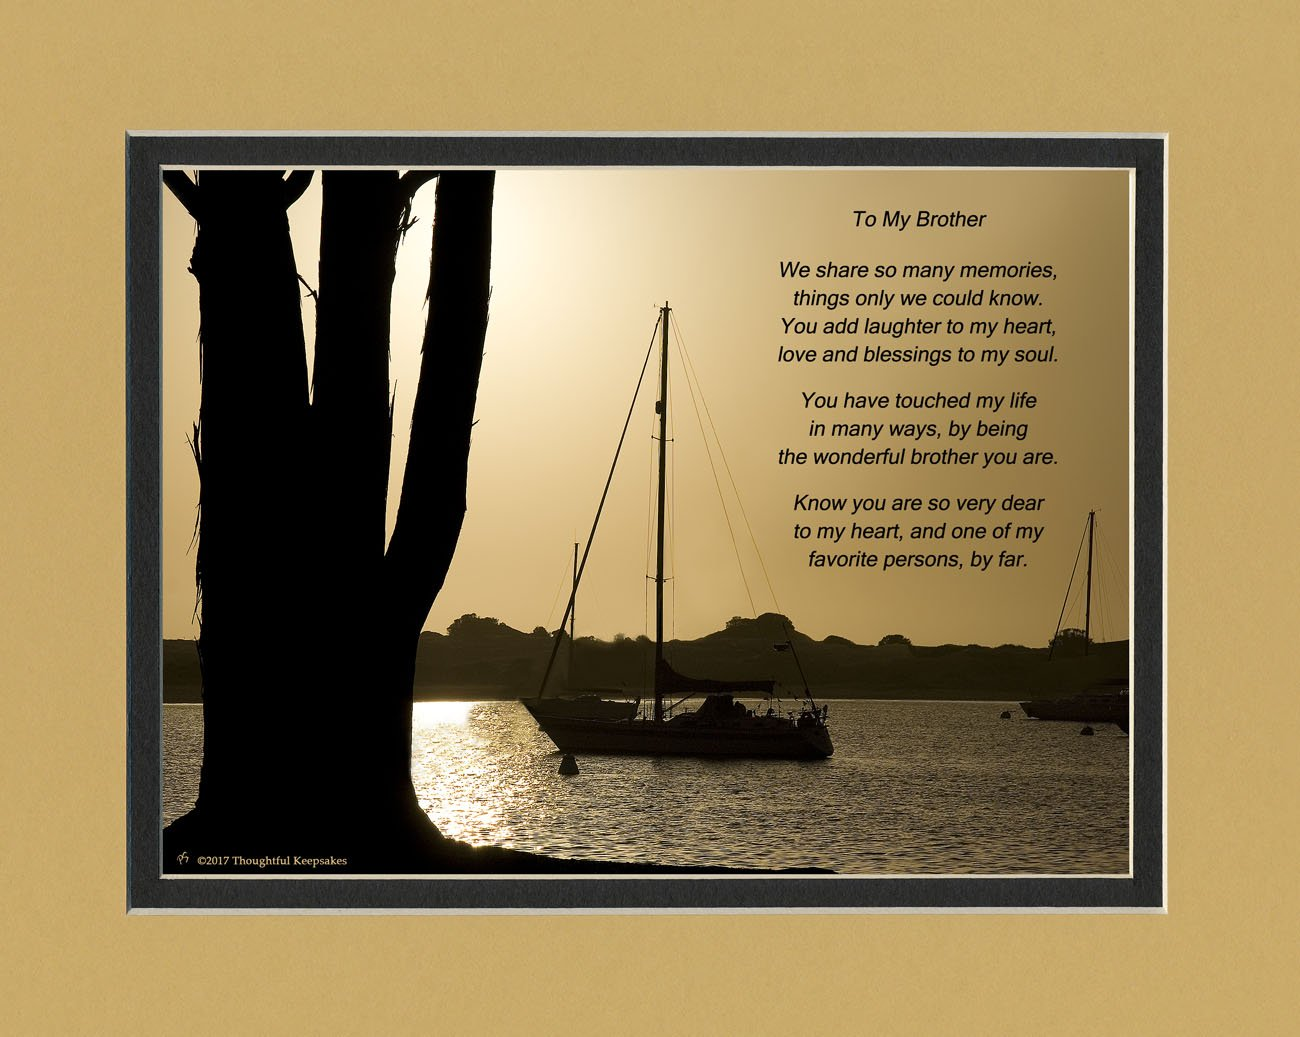 Brother Gift with ''You Have Touched My Life in Many Ways, By Being the Wonderful Brother You Are'' Poem. Boats at Dusk Photo, 8x10 Matted. Special Birthday or Christmas Gift for Brother.